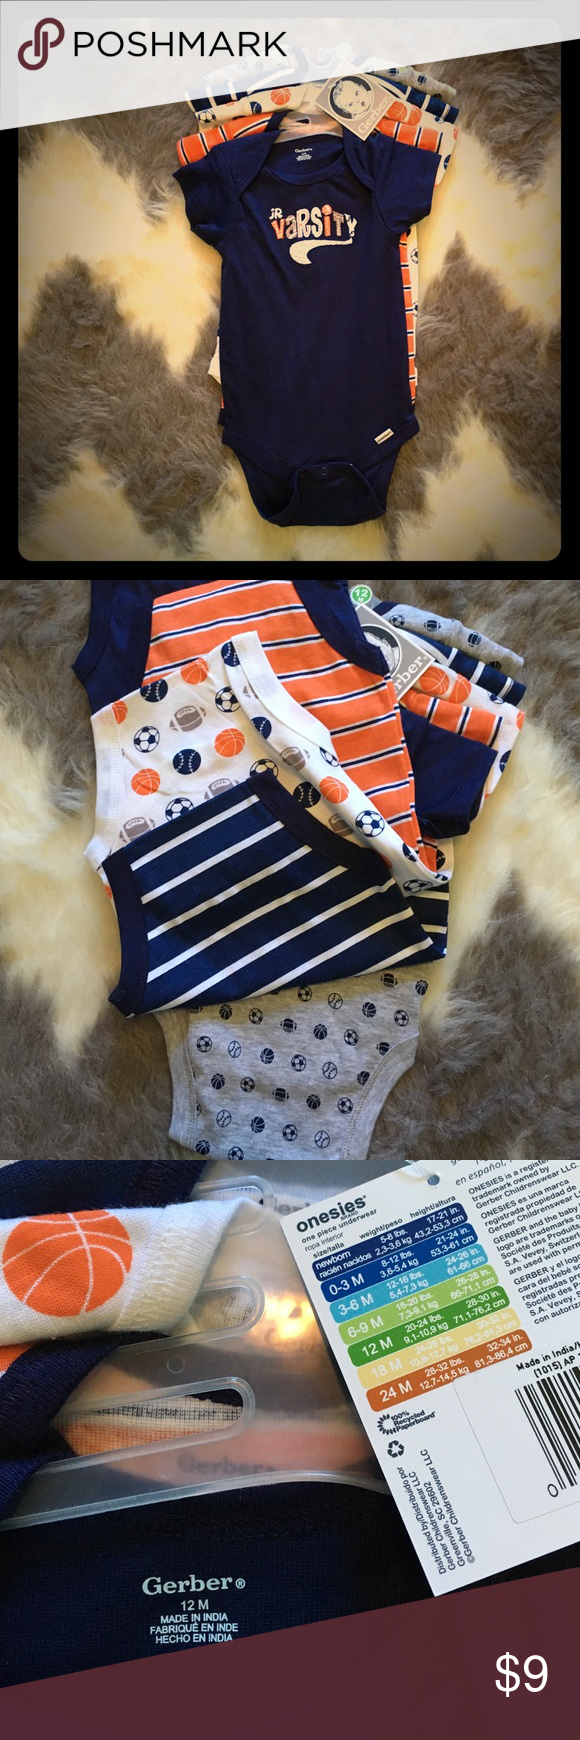 Onesies NWT, size 12 months, 5 pack of sport themed onesies. Gerber One Pieces